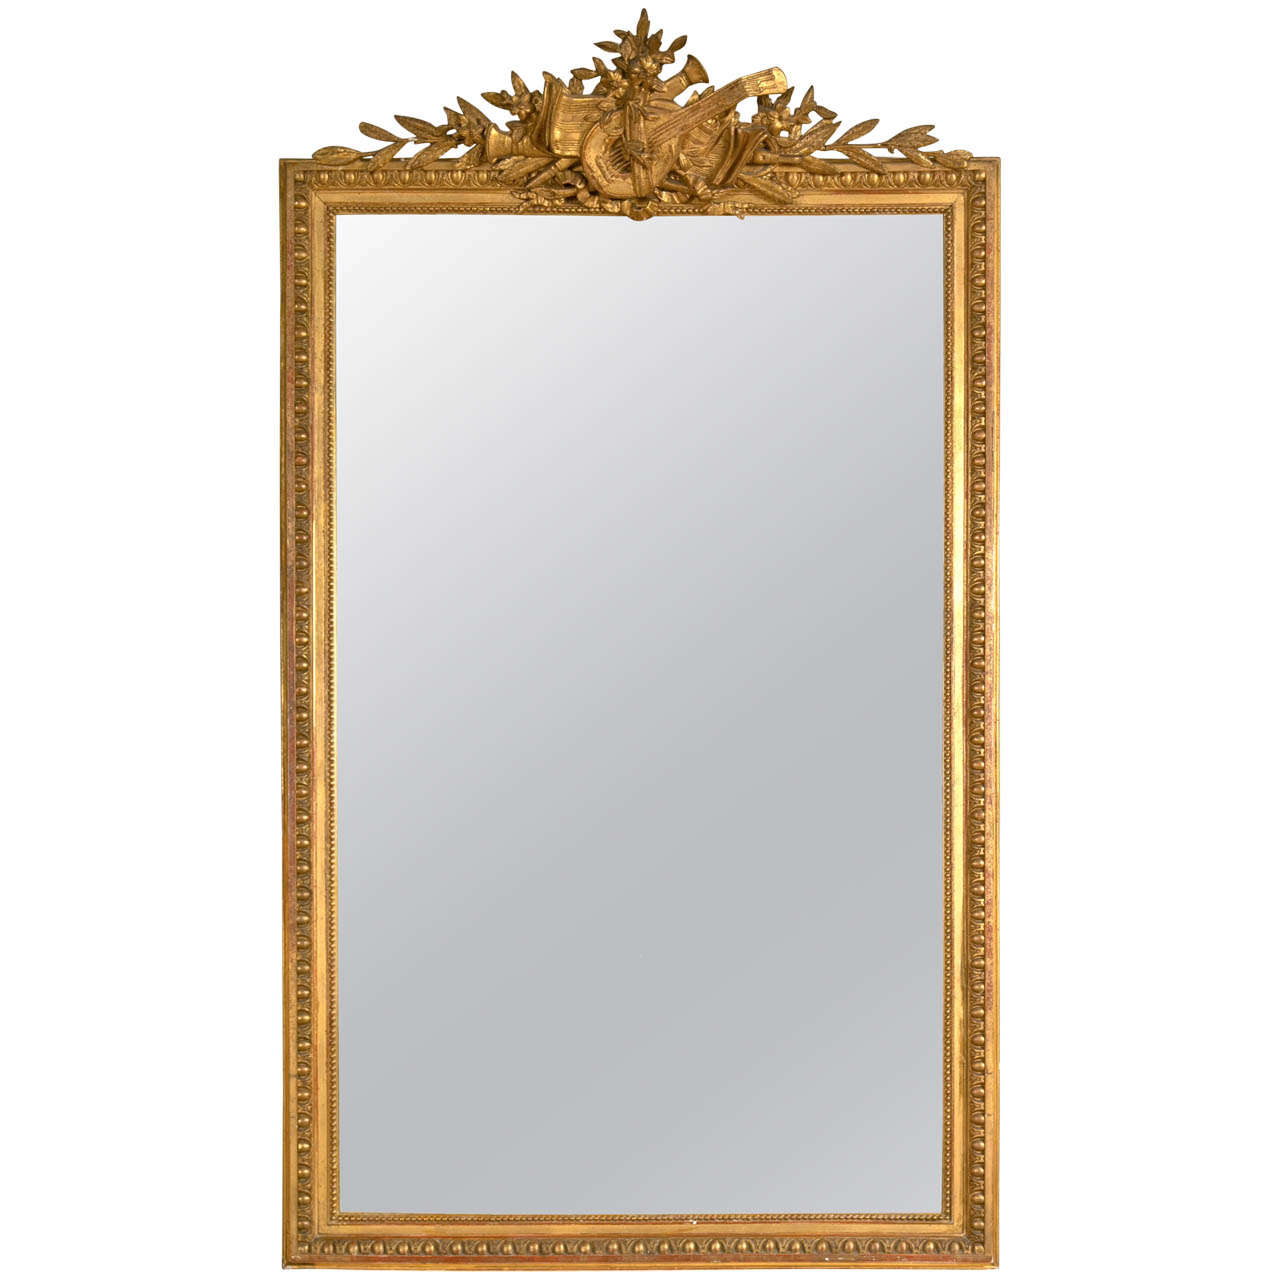 french louis xvi style gilt frame mirror at 1stdibs